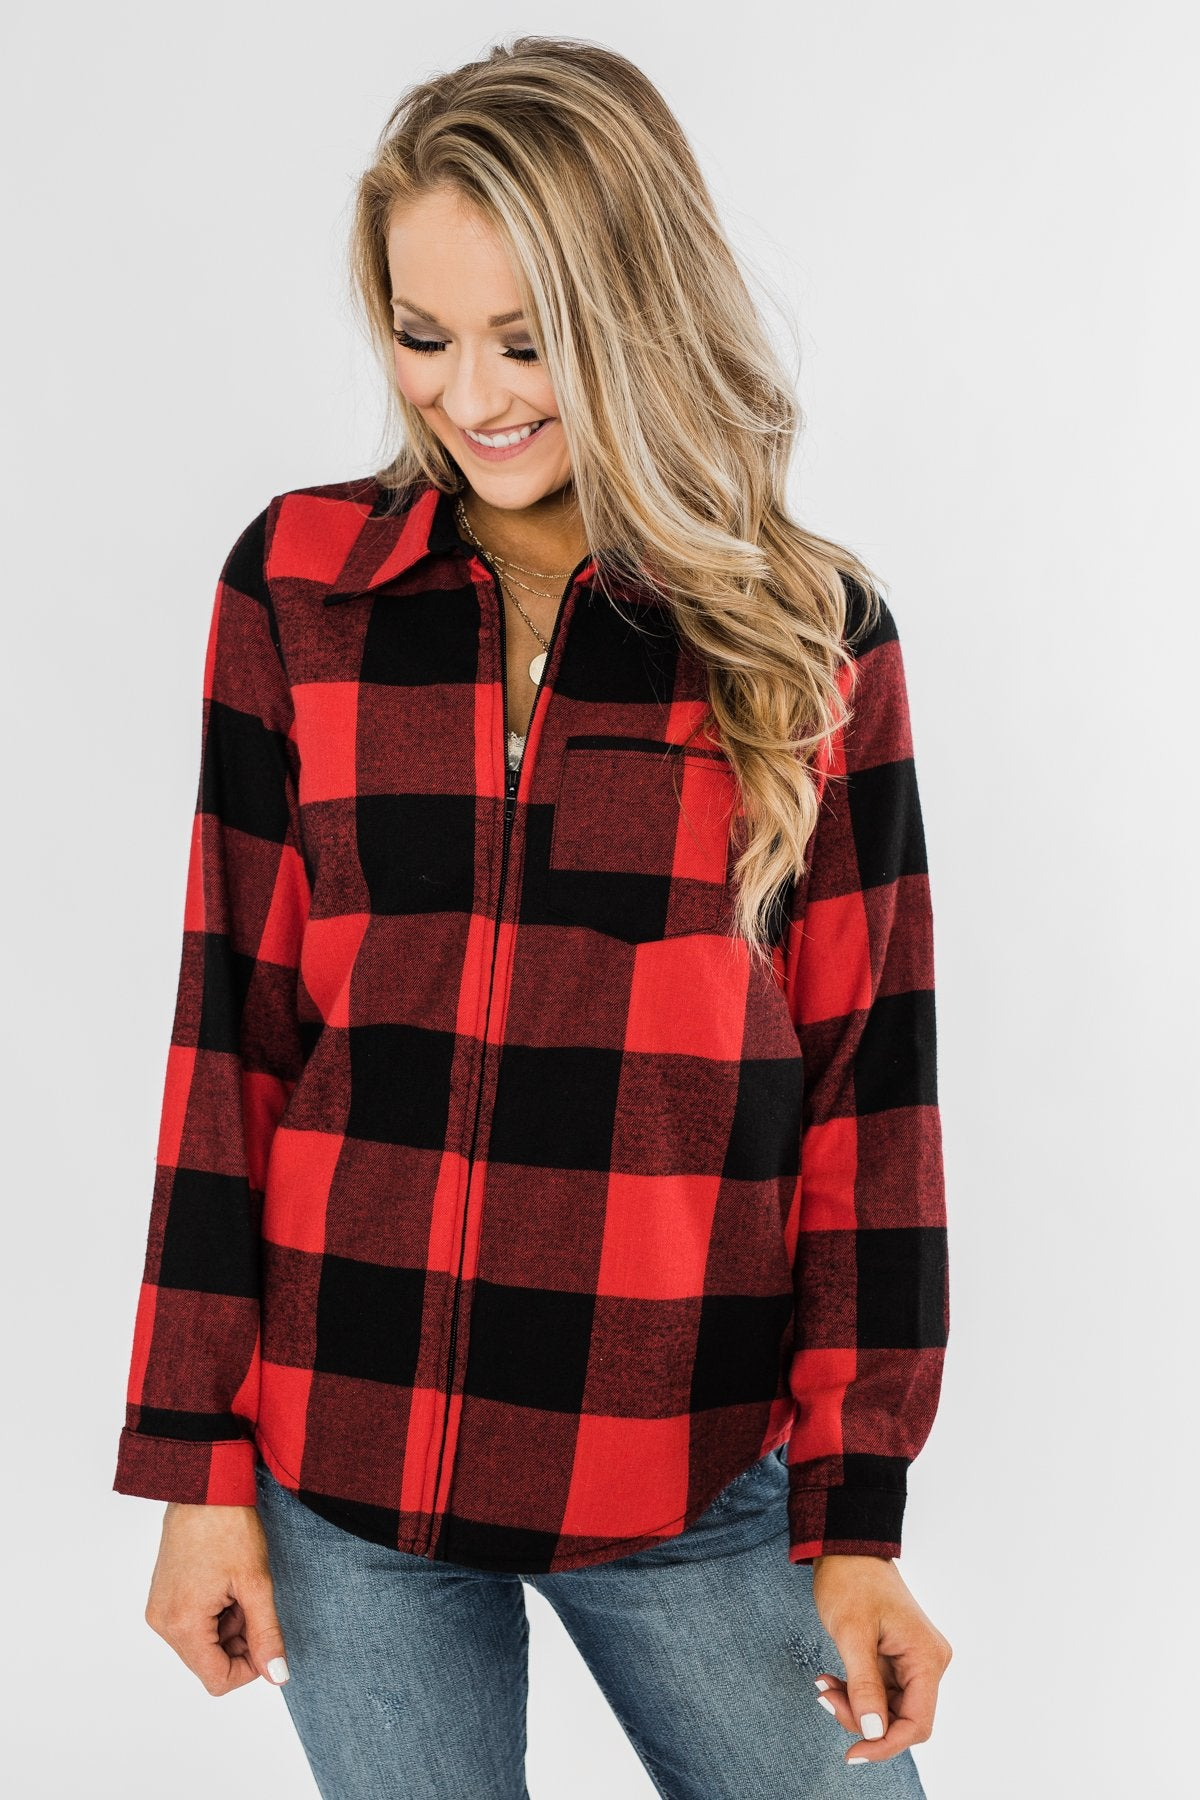 Cabin Fever Zip-Up Jacket- Buffalo Plaid